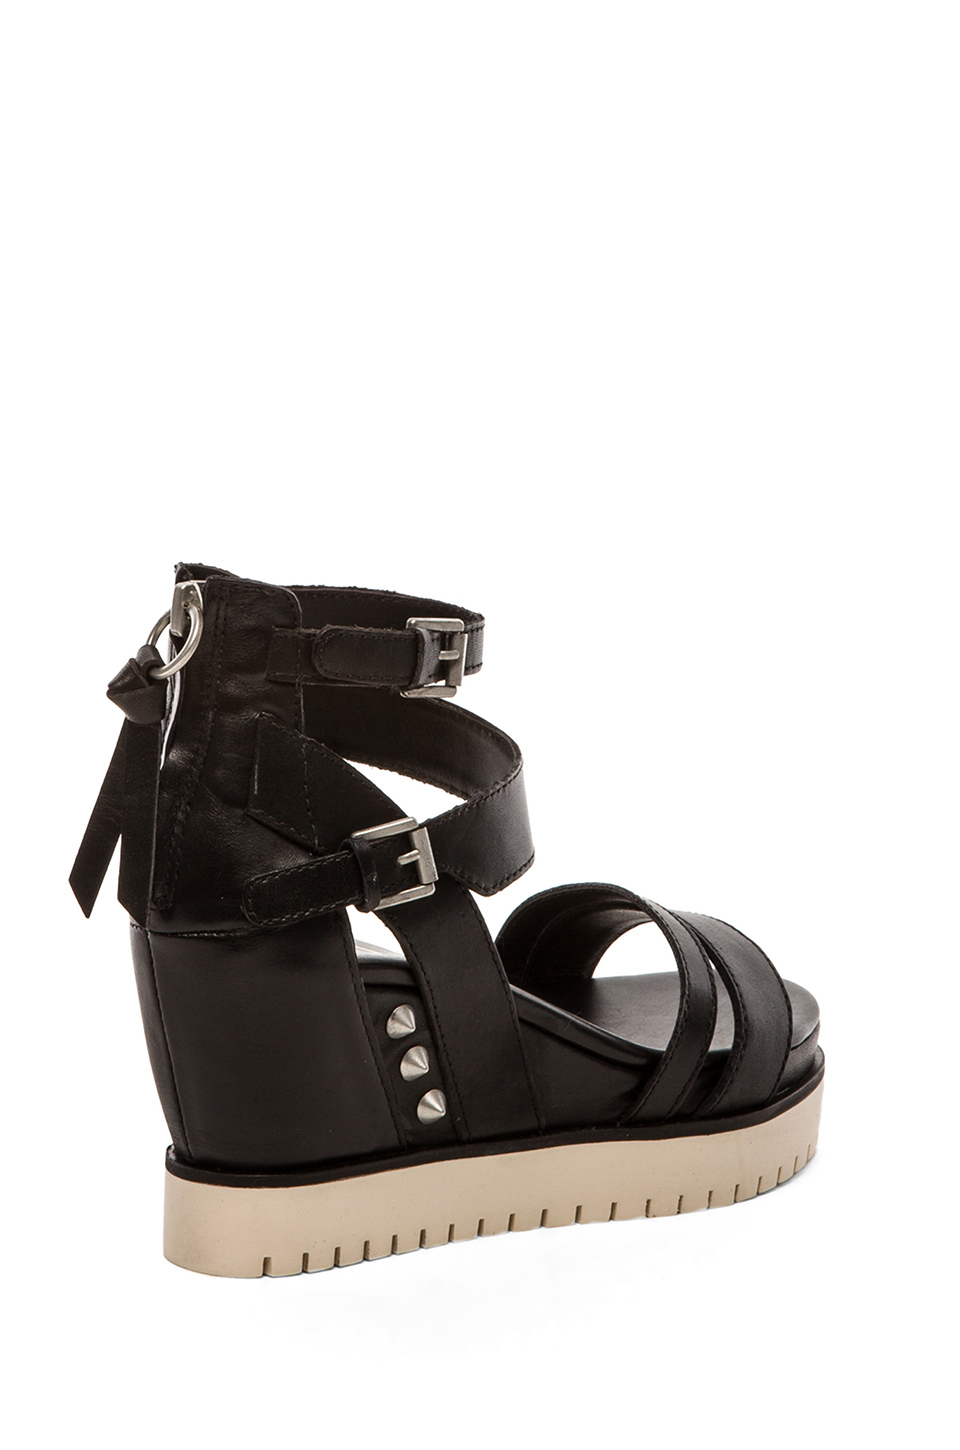 Ash penelope womens black leather wedge sandal